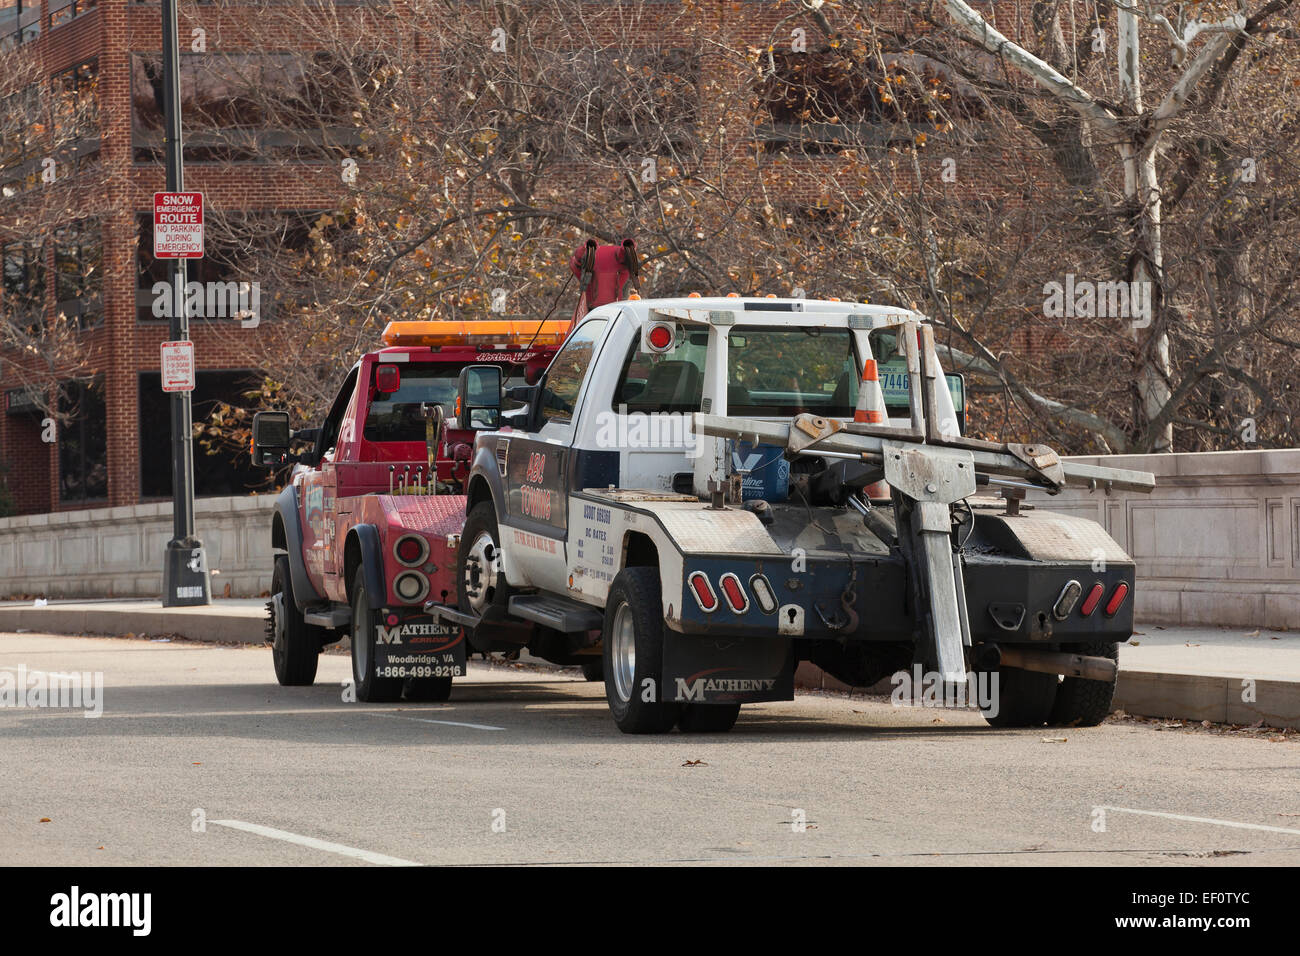 Tow truck being towed usa stock image